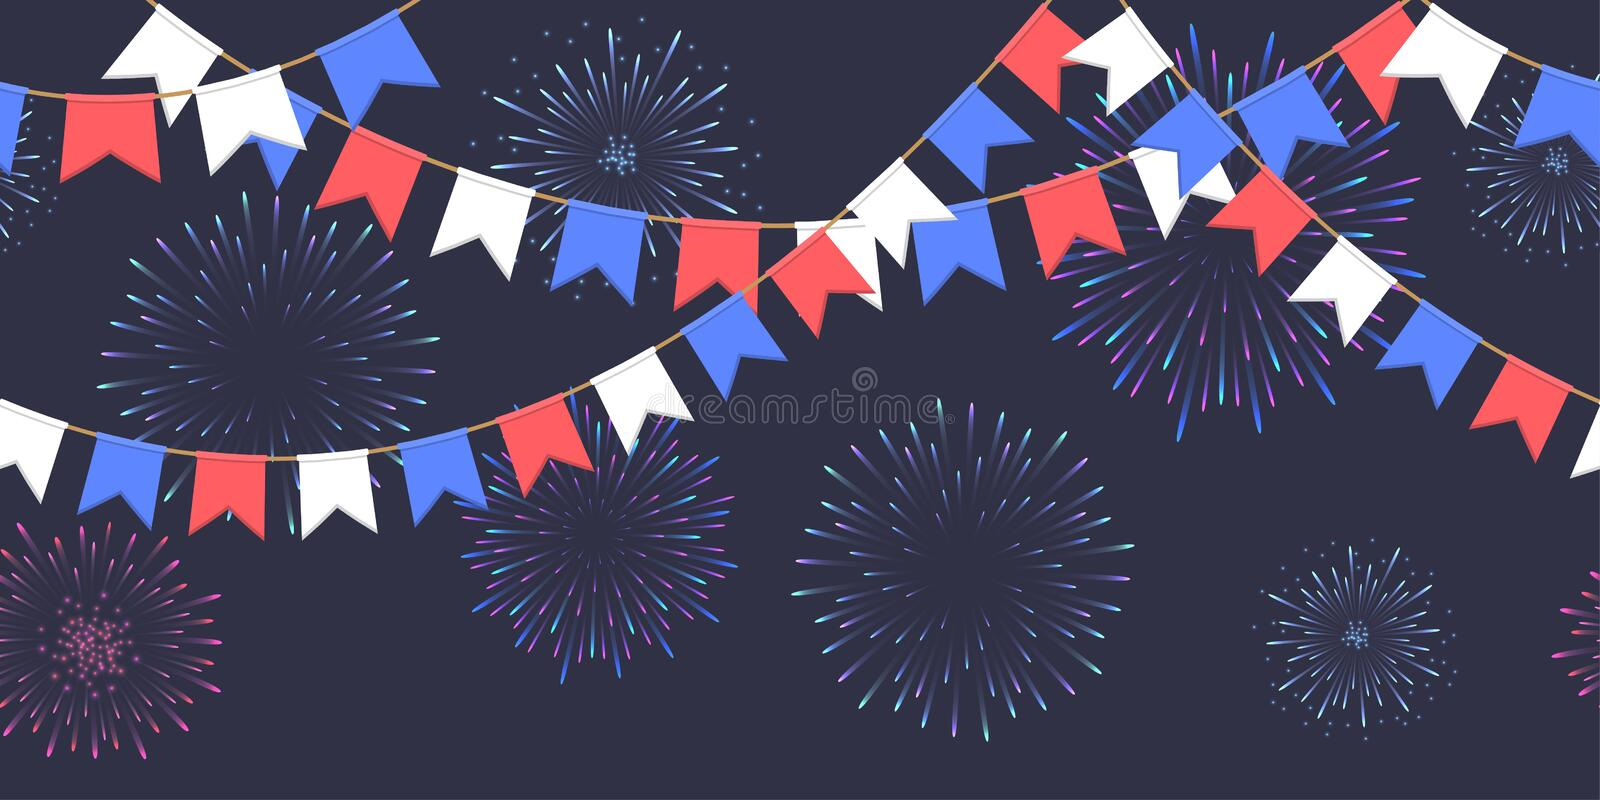 Seamless garland with celebration flags chain, white, blue, red pennons and salute on dark background, footer and banner fireworks vector illustration